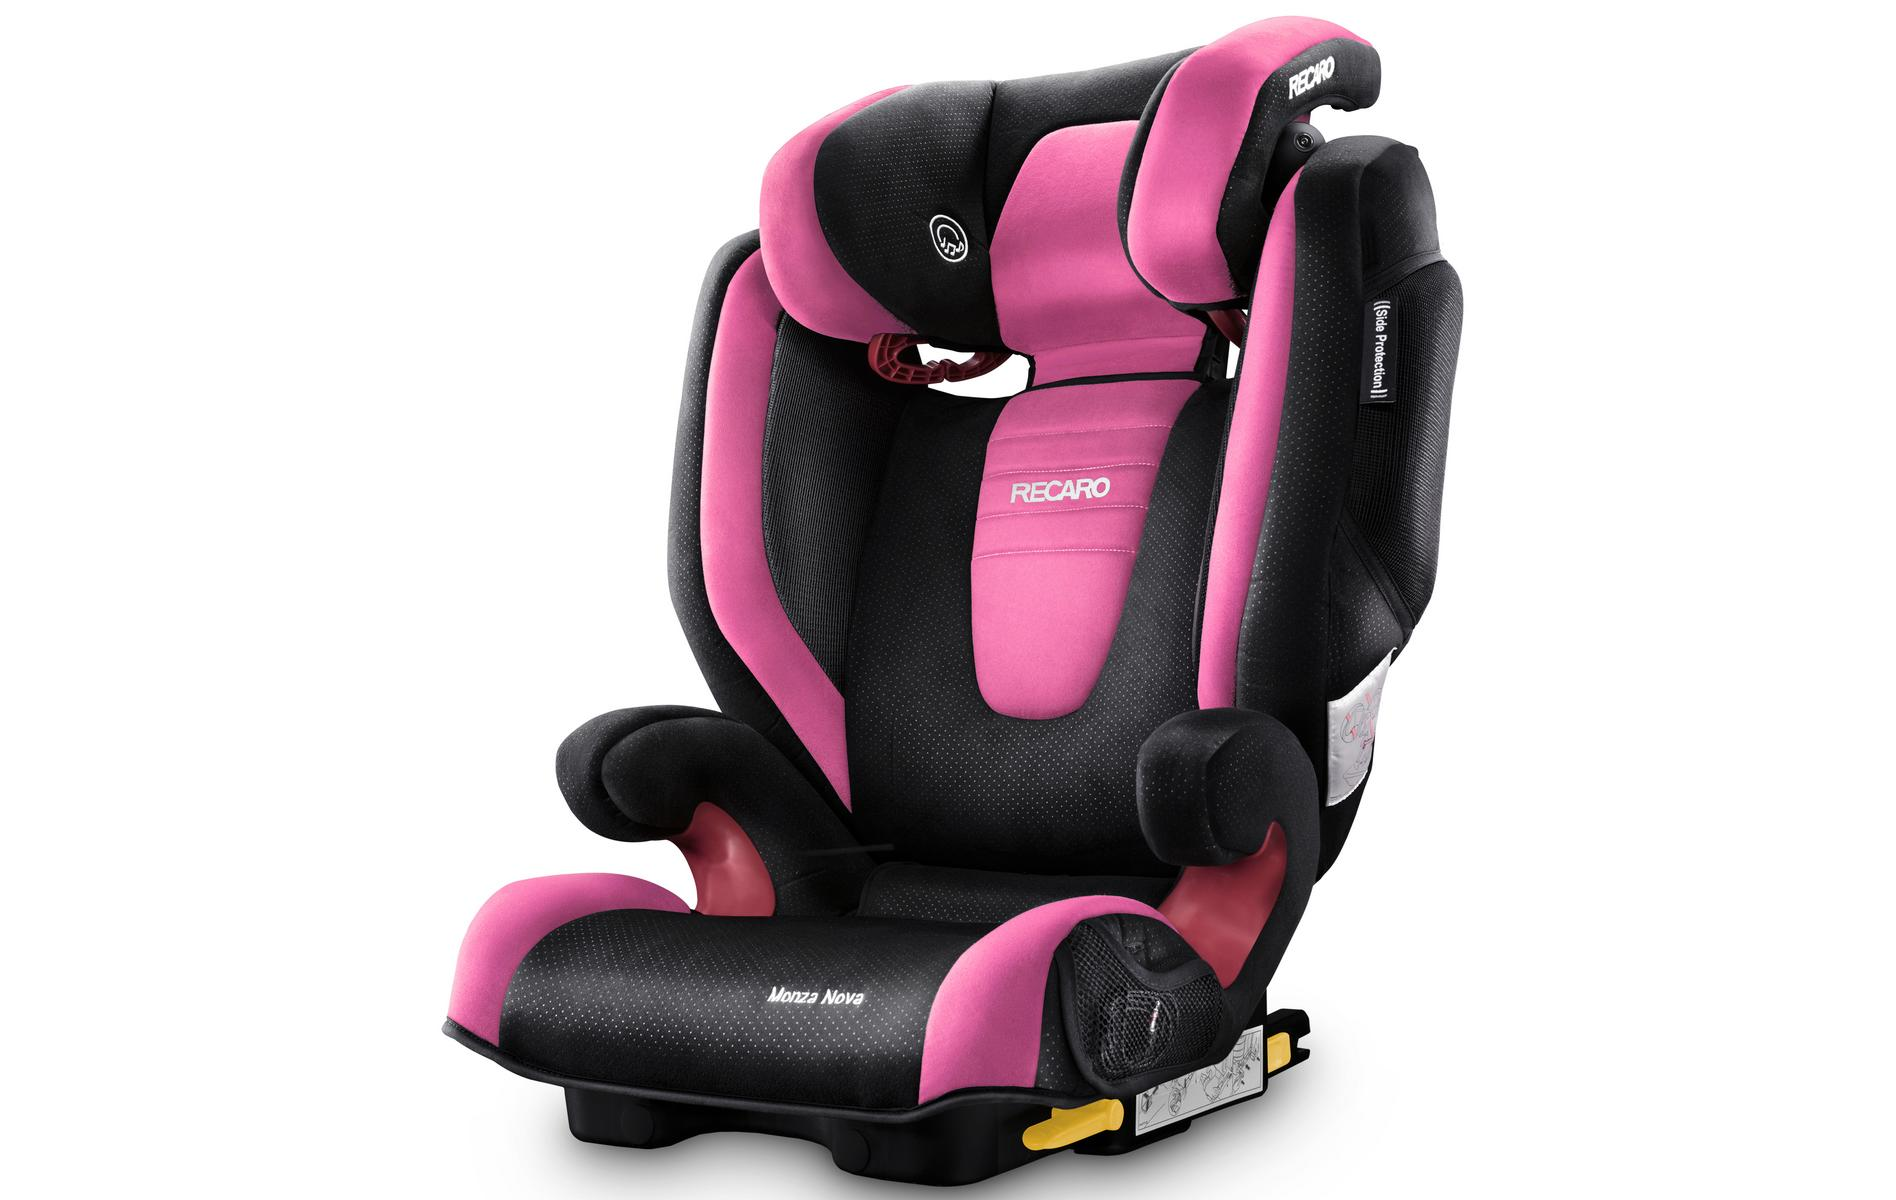 Recaro Monza Nova 2 High Back Booster Seat with SeatFix - Pink